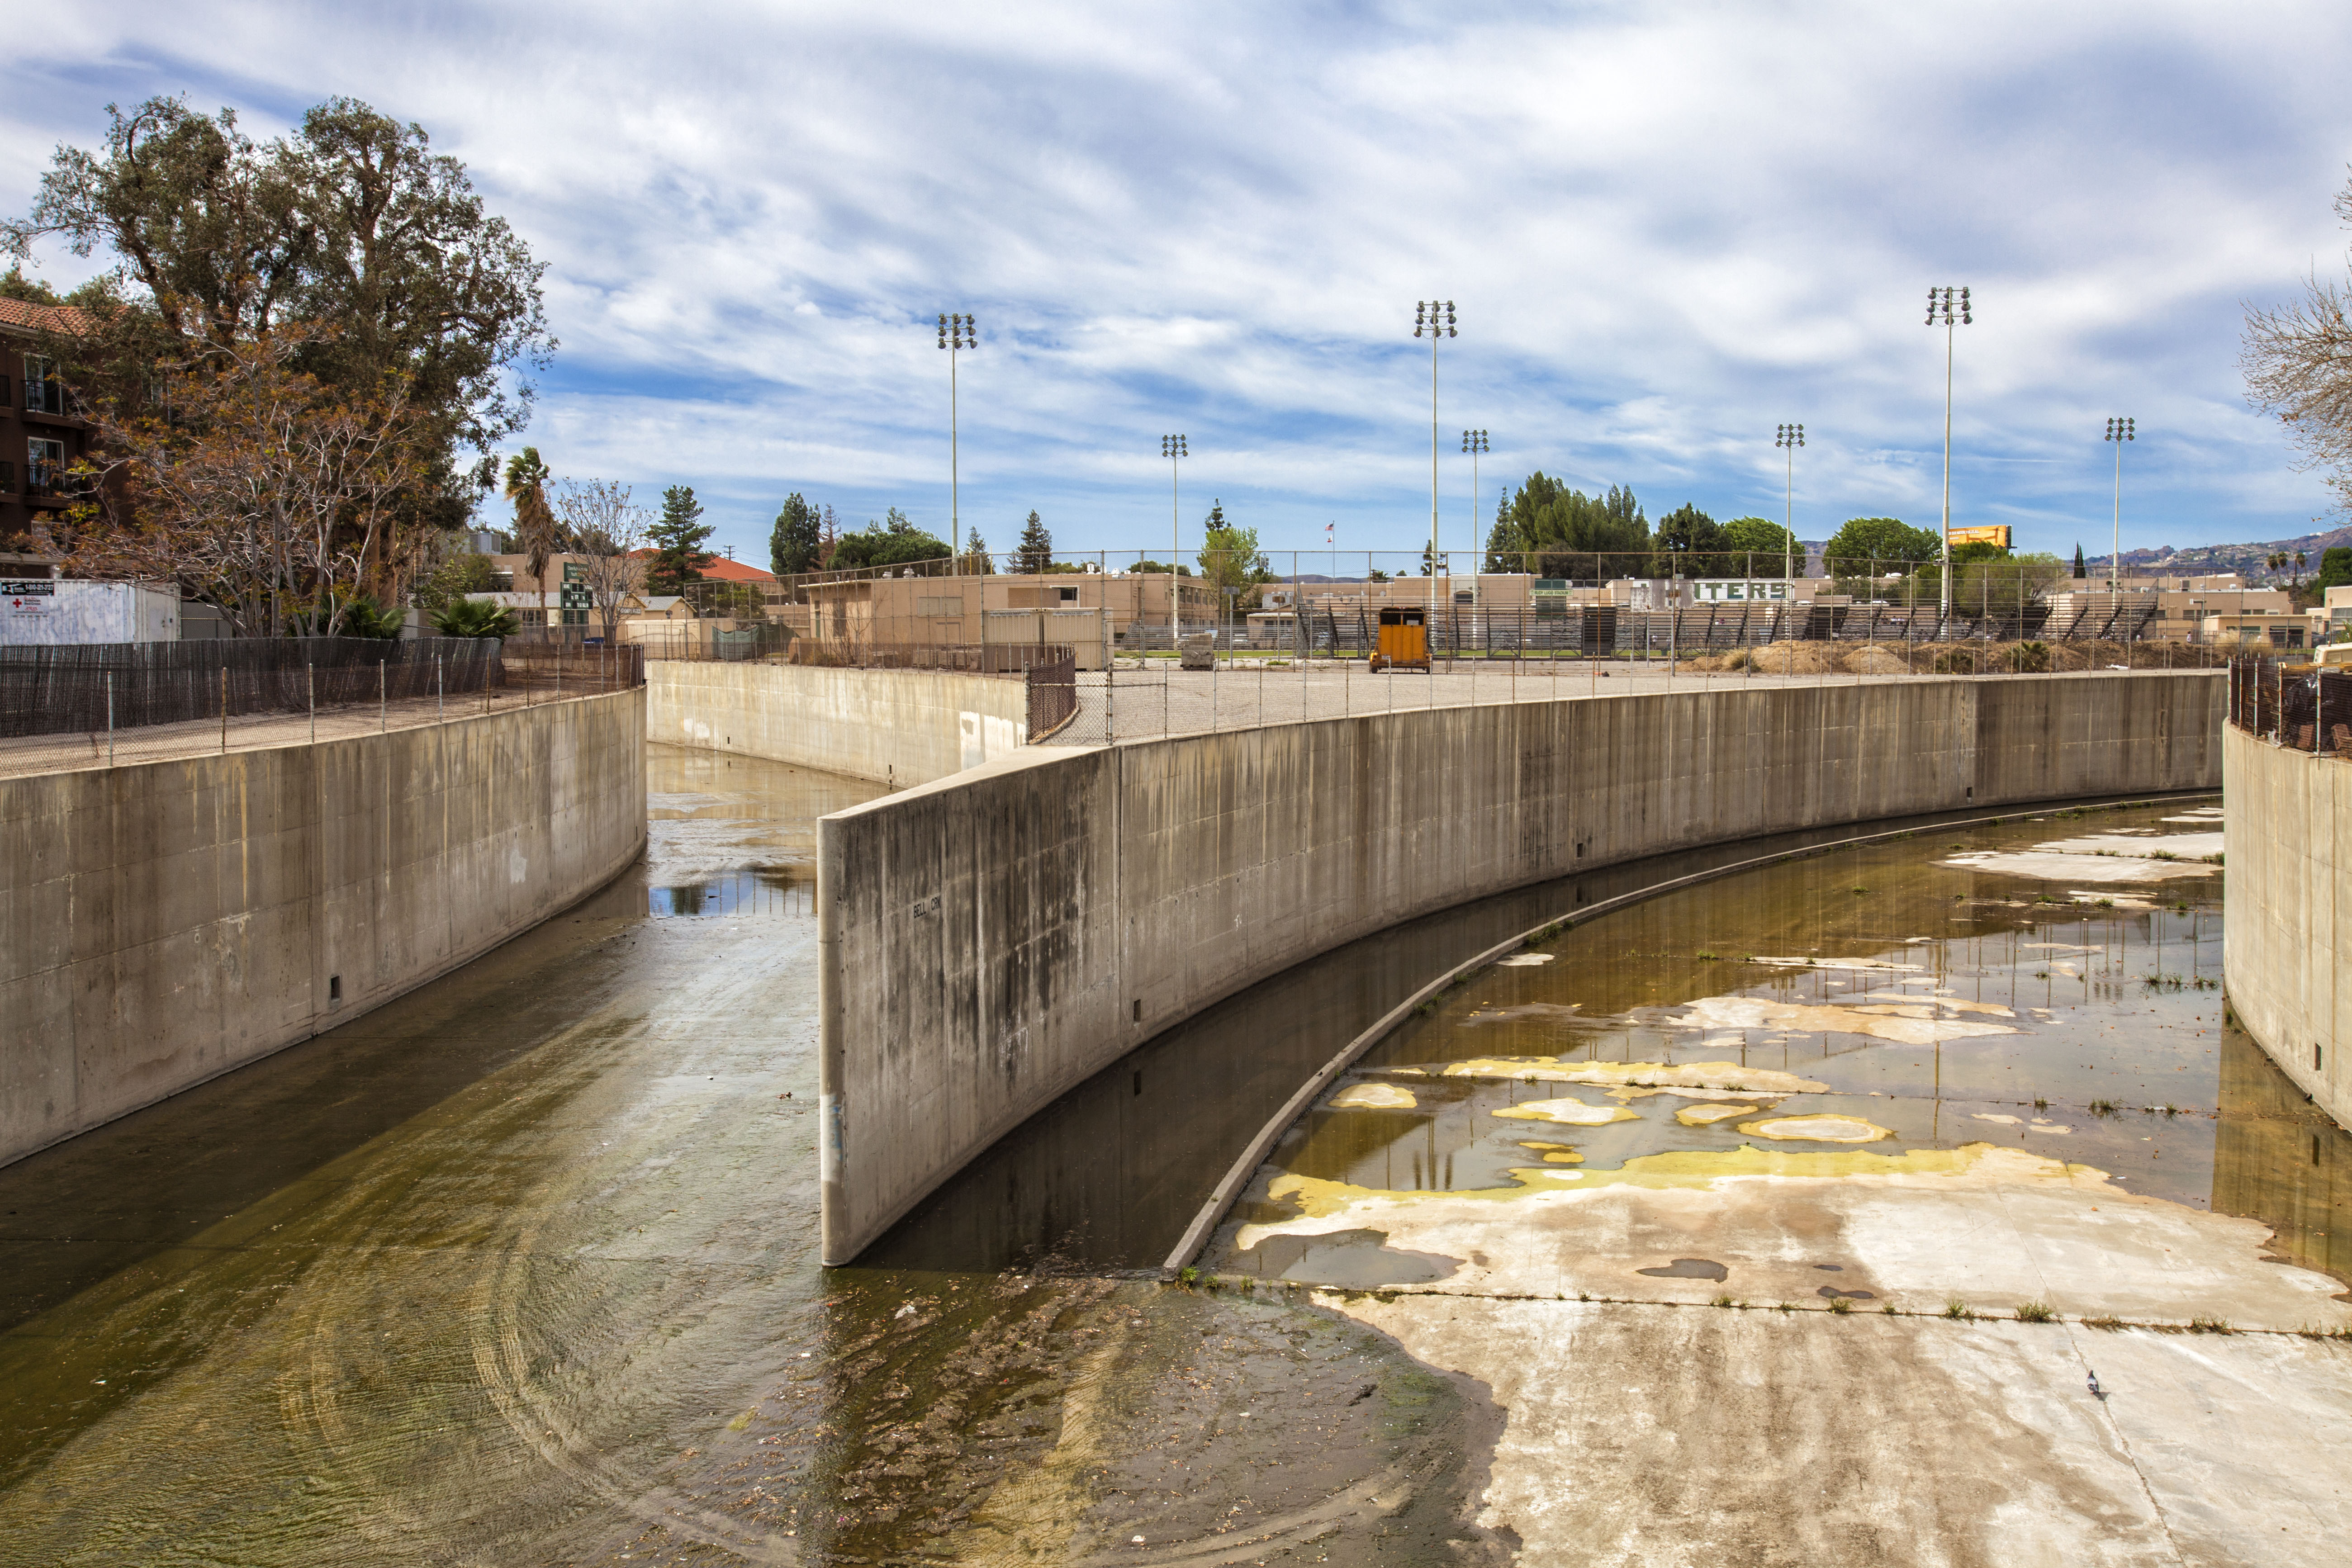 Targeting homeless camps, councilmember asks for more oversight of LA River